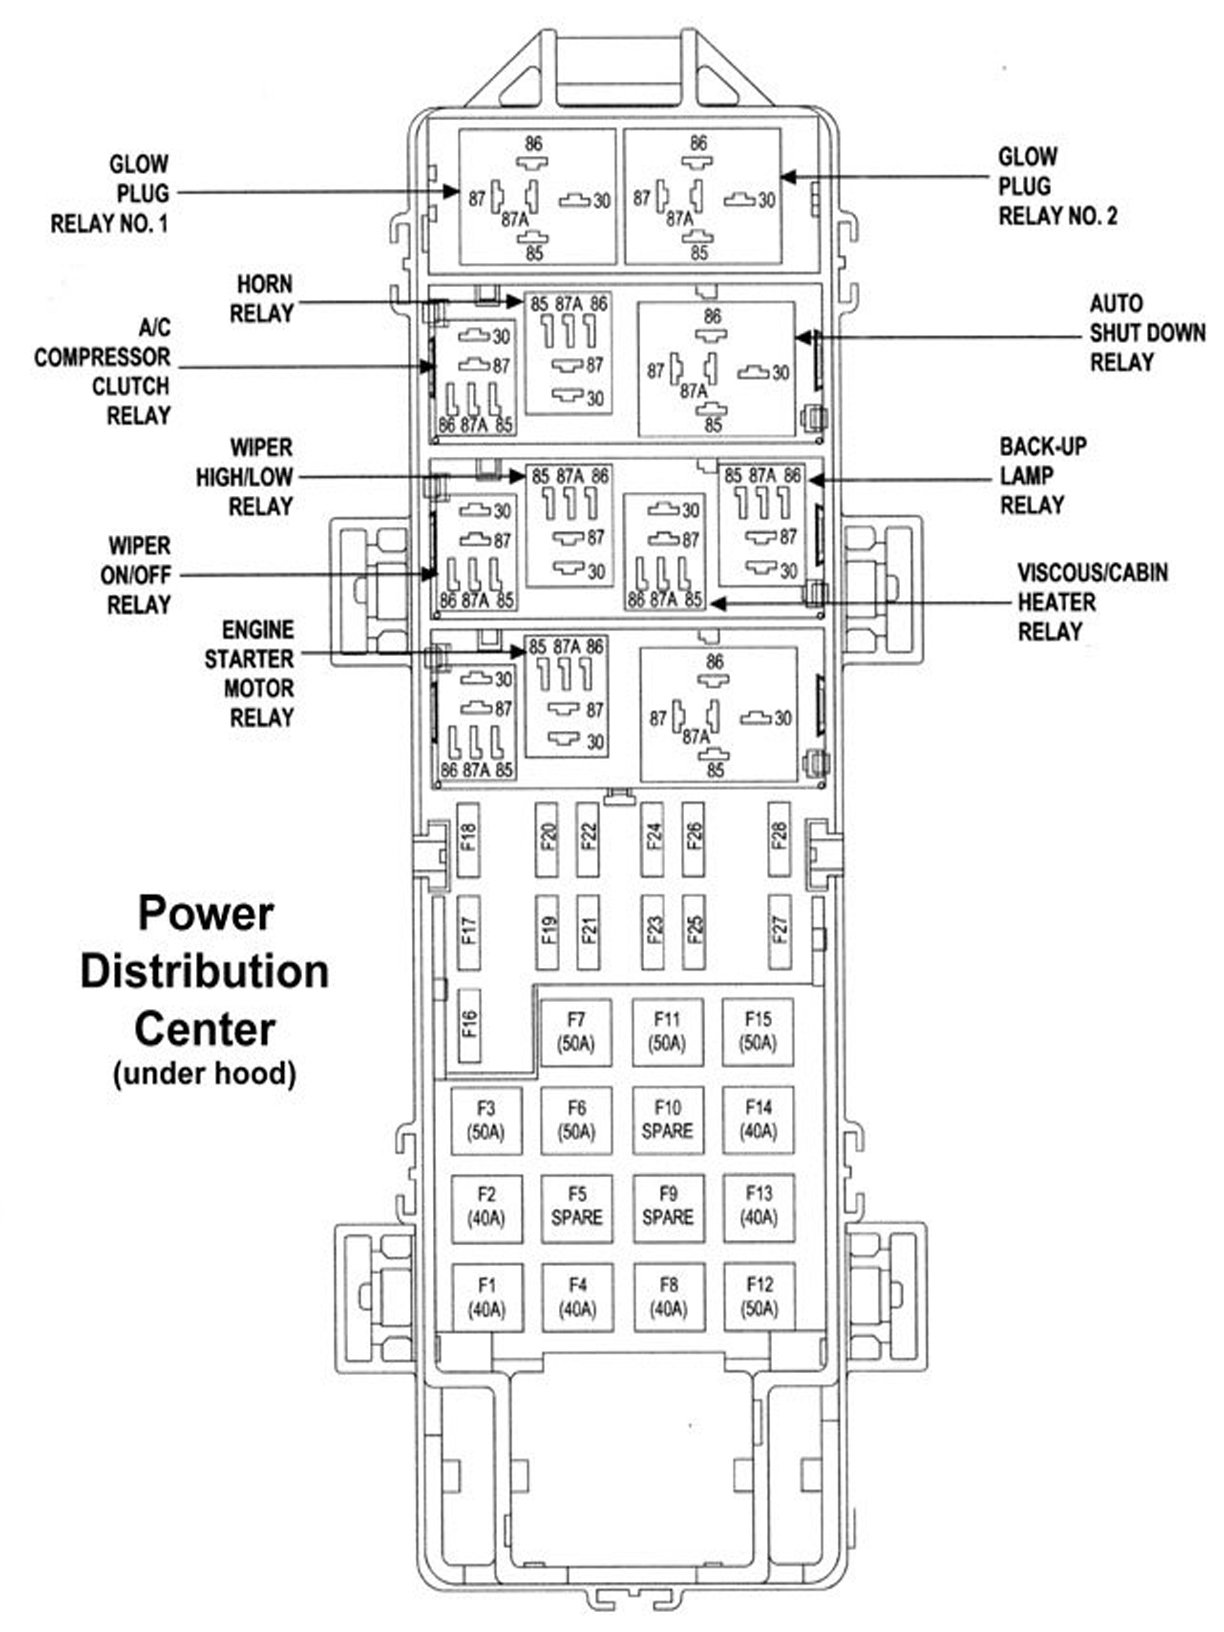 AAAAAAAAug 28 Fuse Box 04 91415 jeep grand cherokee wj 1999 to 2004 fuse box diagram cherokeeforum 1998 jeep grand cherokee fuse box diagram at panicattacktreatment.co